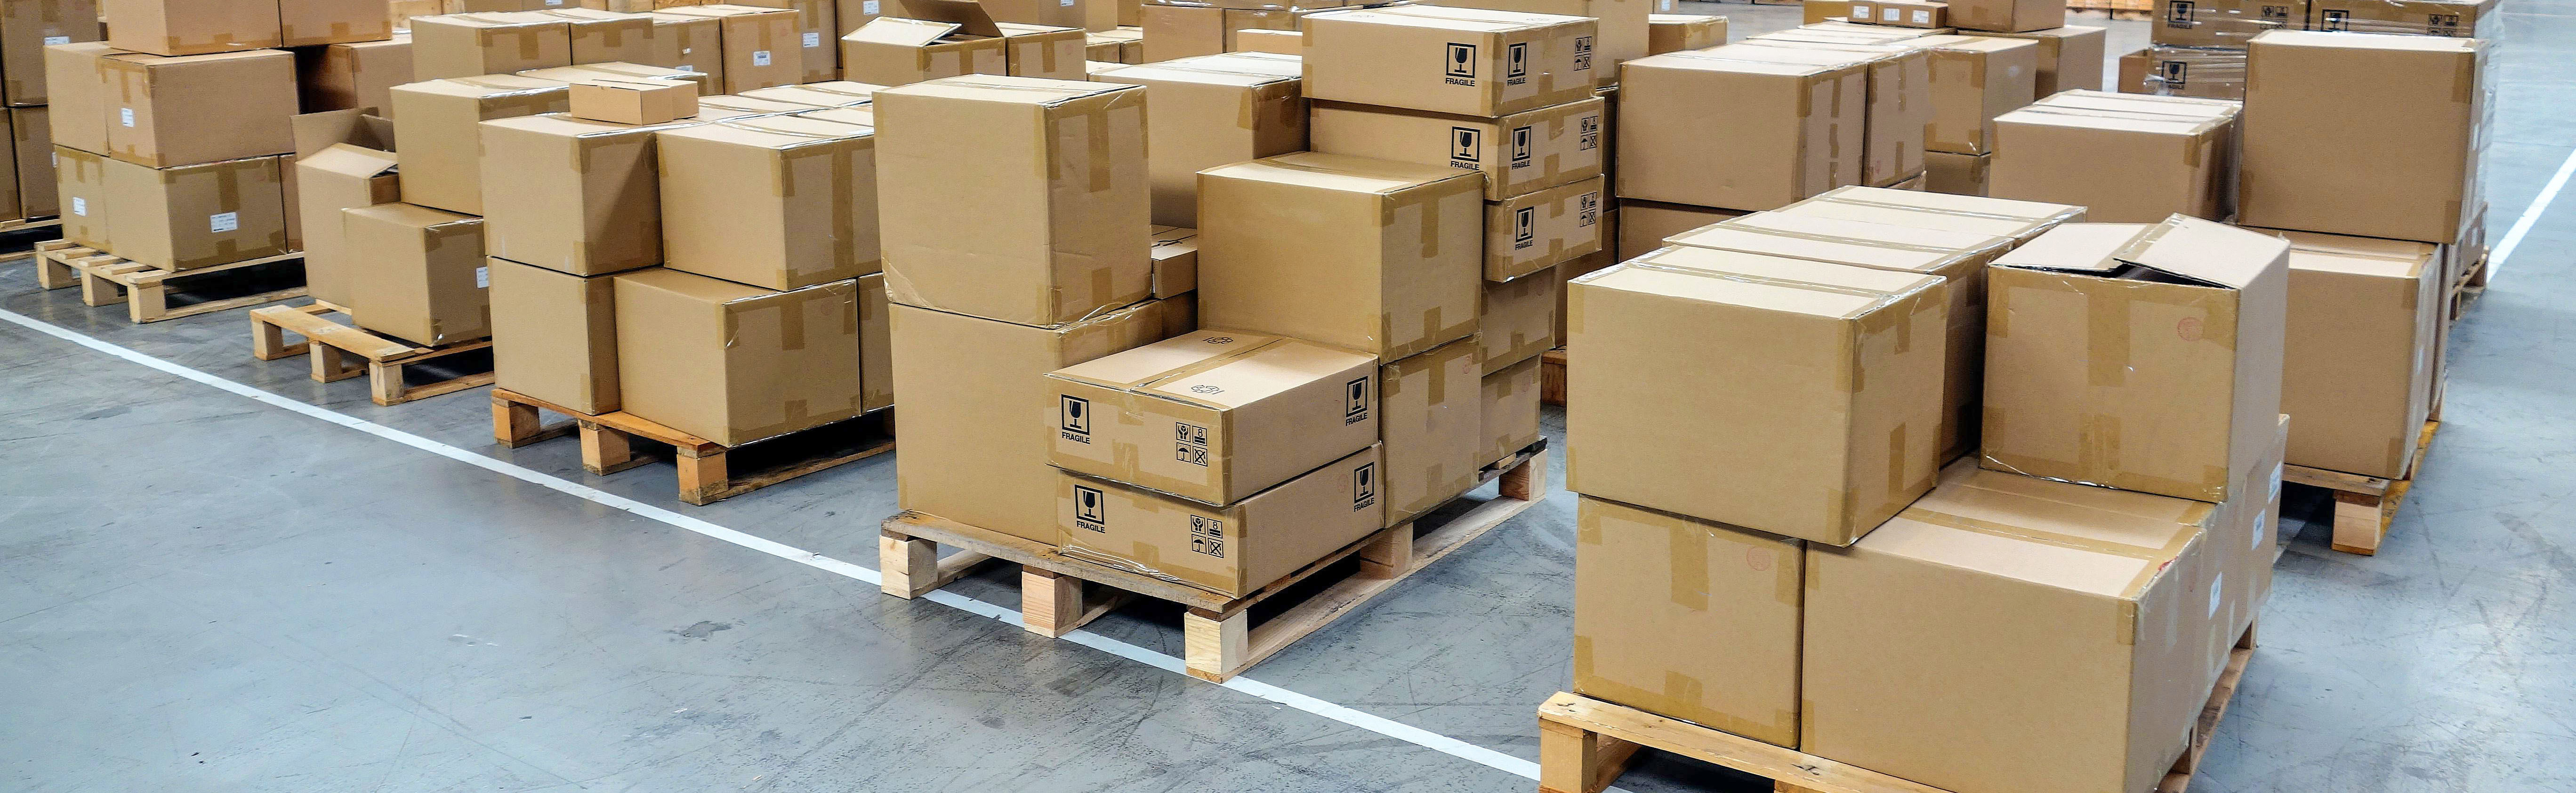 LTL Shipping Your Furniture - Cratex Group   ltl furniture delivery